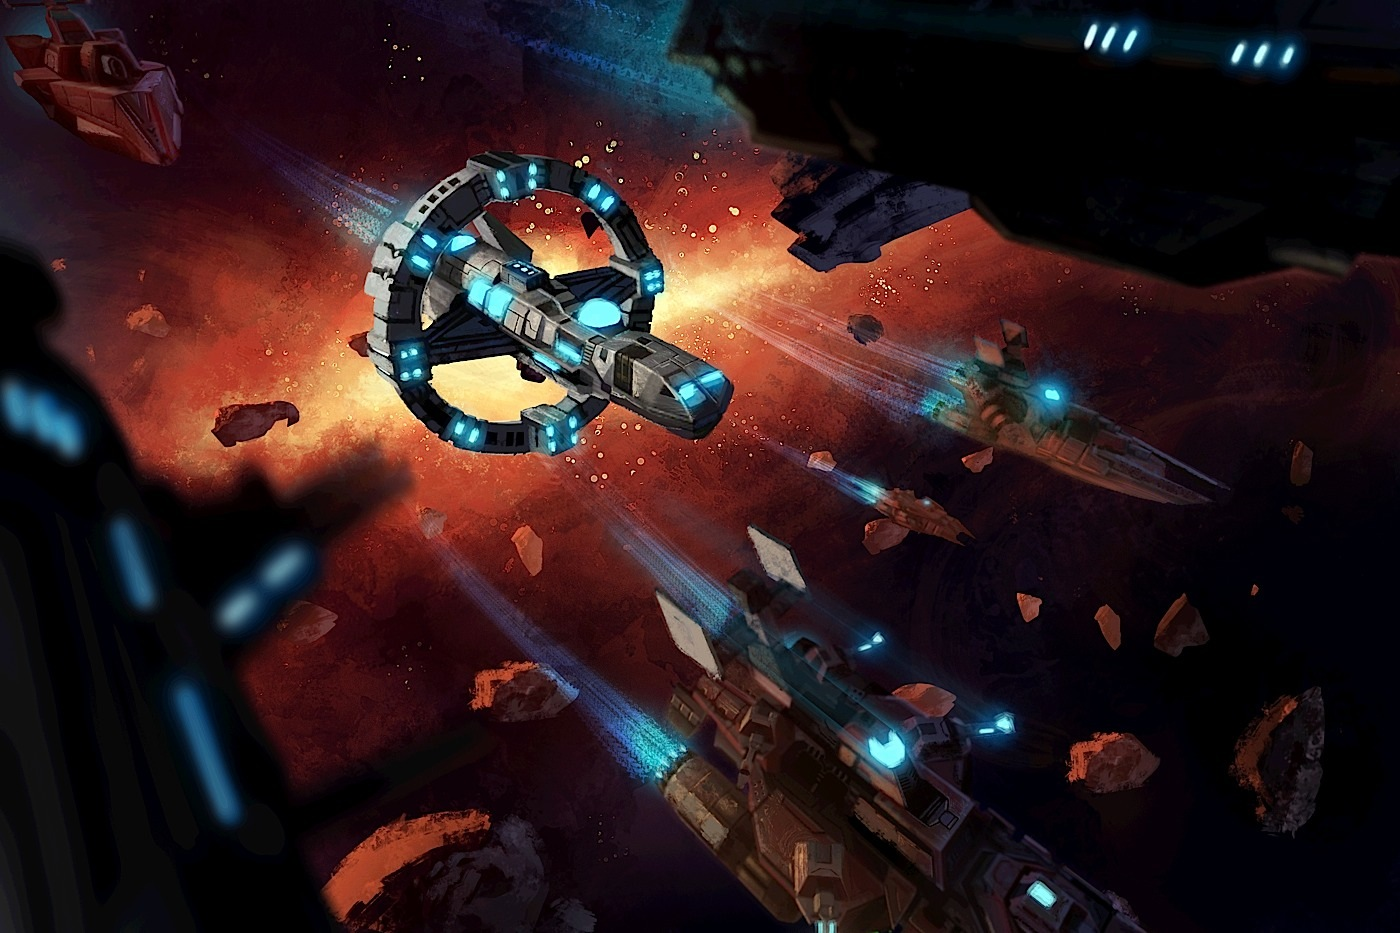 Sid Meier's Starships artwork.